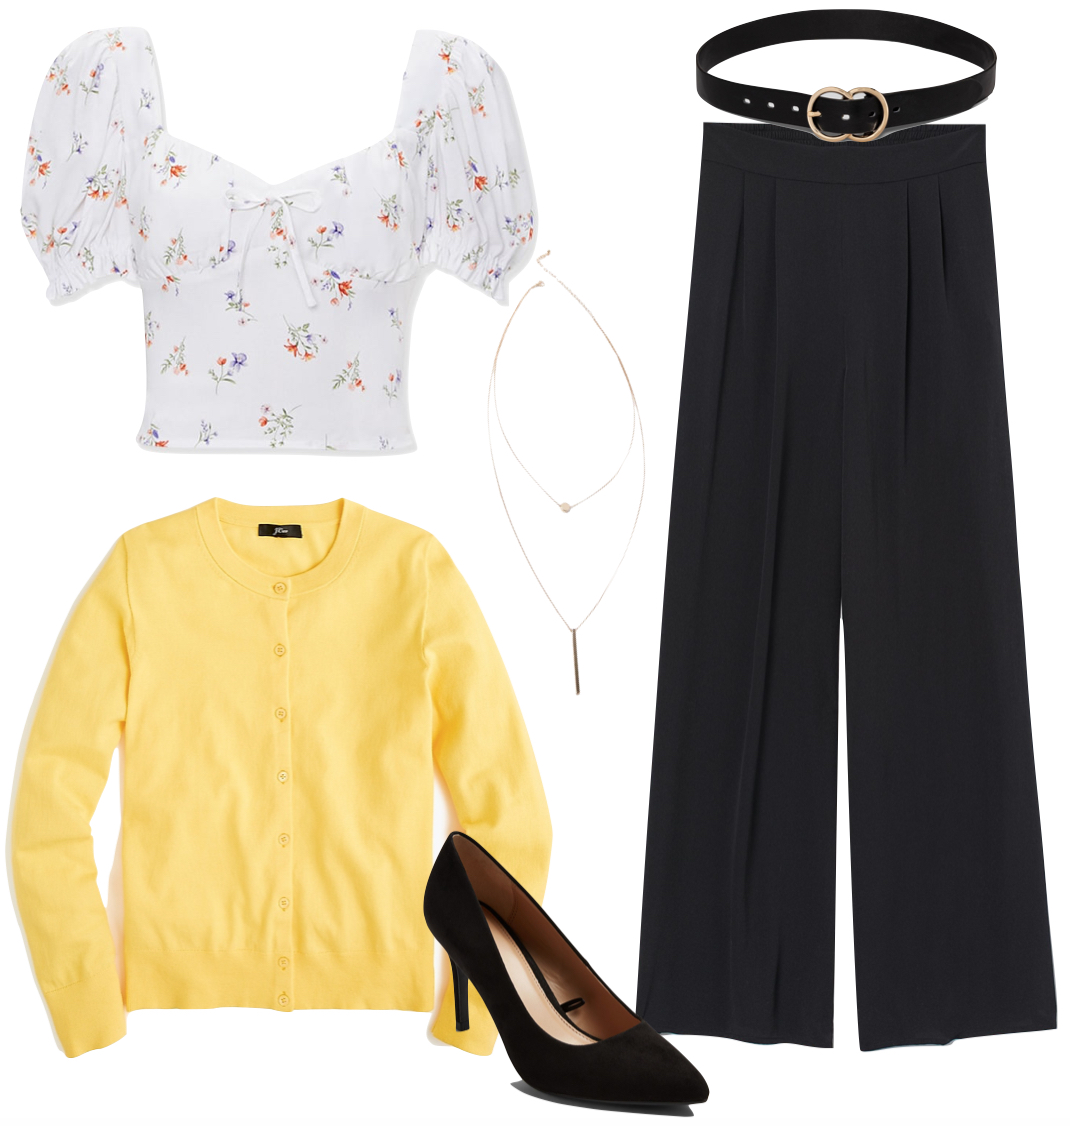 Vanessa Hudgens Outfit #2: white floral bustier top, black wide leg pants, black and gold double circle belt, yellow cardigan sweater, layered gold necklace, and black pumps